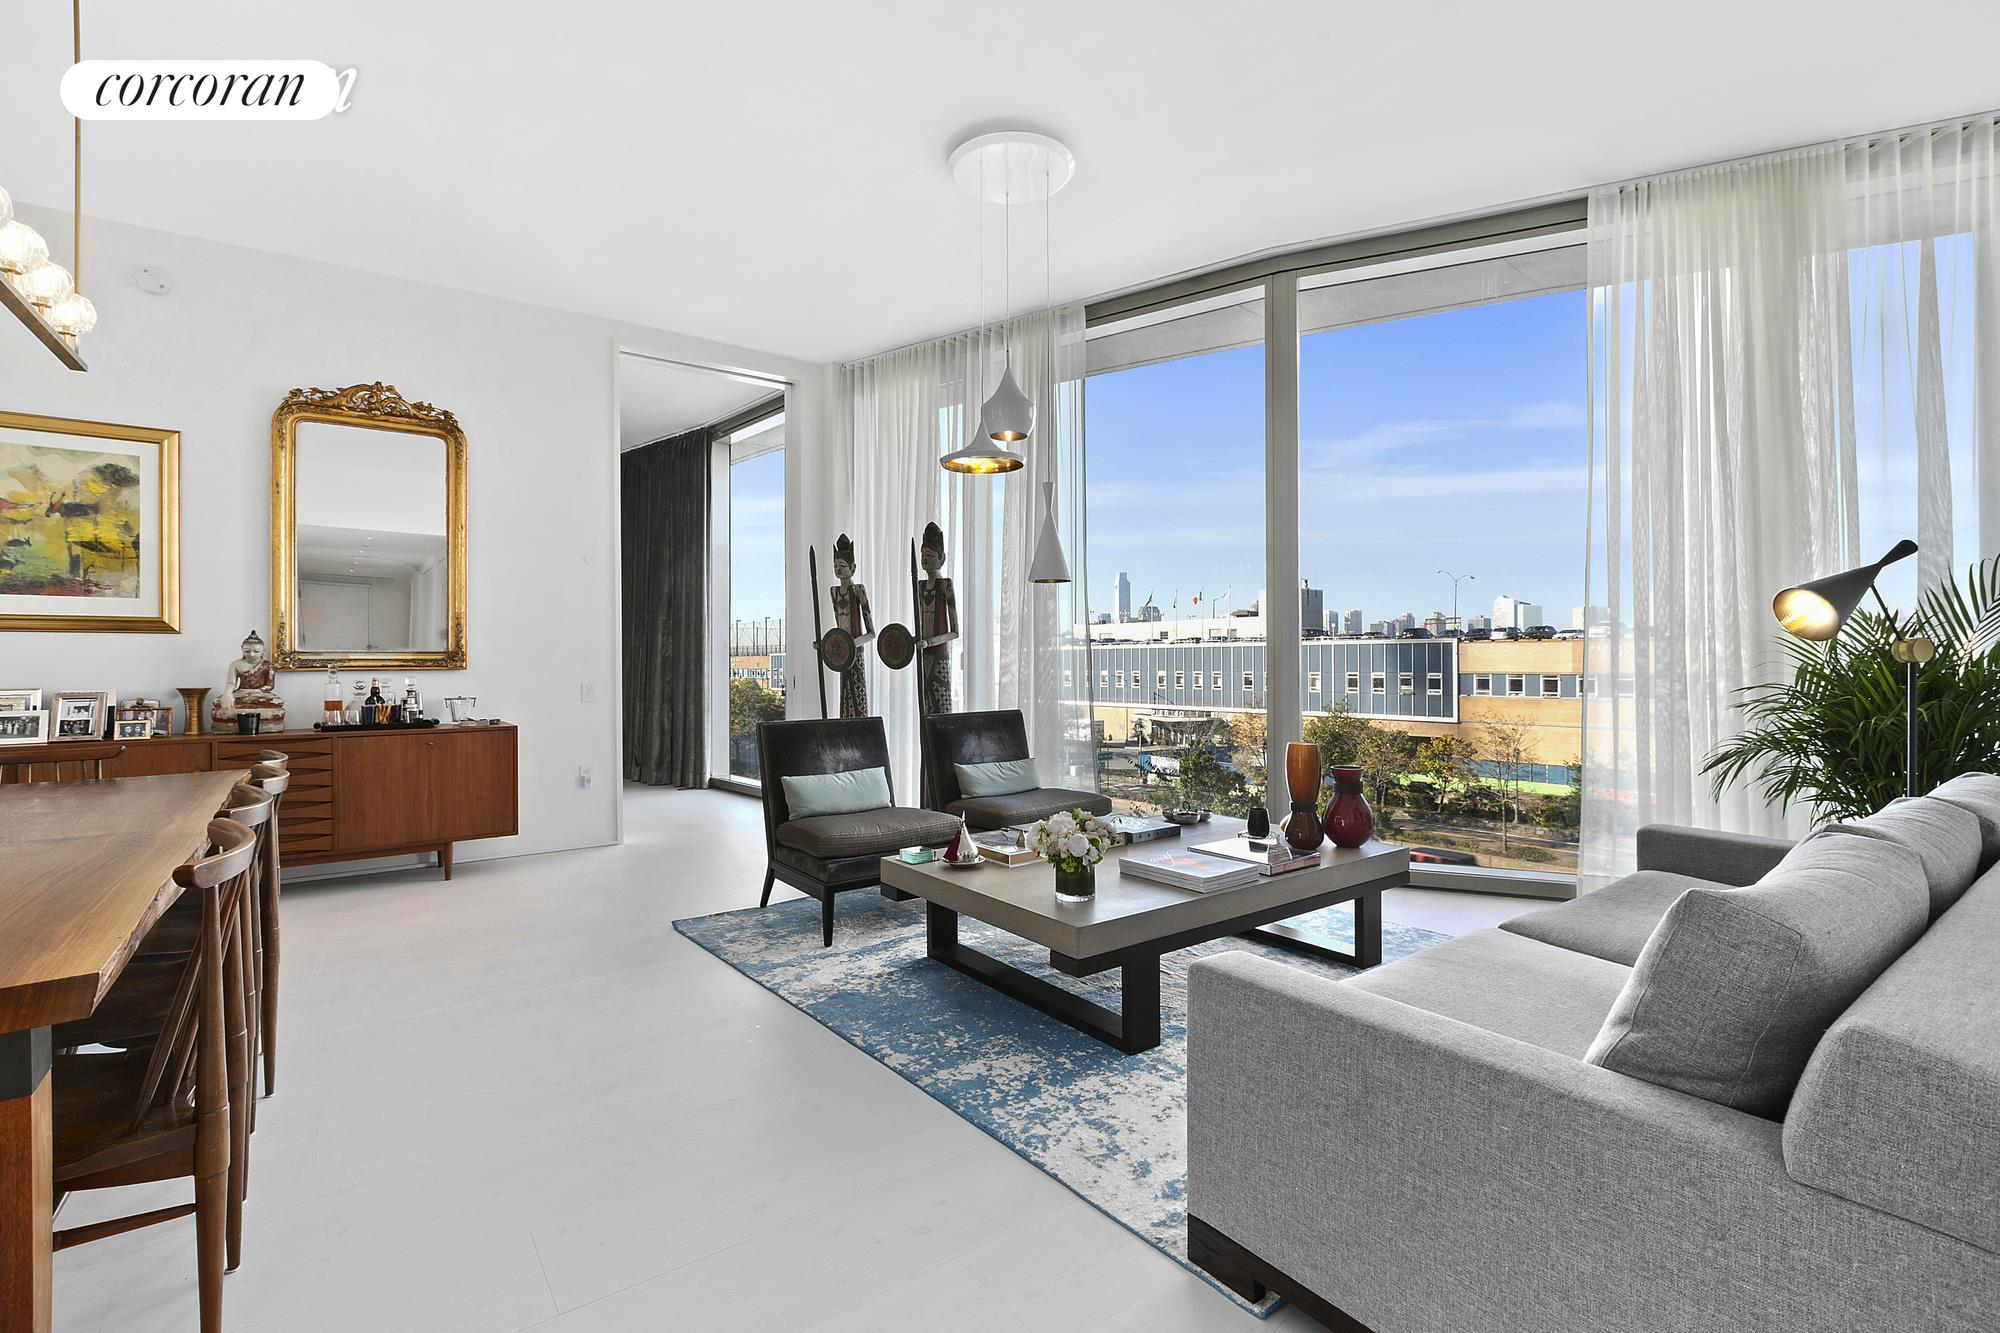 Situated along the Hudson River waterfront in the West Village, this stunning home is the one-of-a-kind, inspired by a collaboration from renowned hotelier/real estate developer, Ian Schrager, and designed by Pritzker Prize winning architects, Herzog & De Meuron.160 Leroy Street North 5A is an approximately 2,046 square foot, 3 bedroom, 3.5 bathroom home with North, West and East exposures with sweeping Hudson River views and Sunsets. This home is beautifully proportioned and perfectly situated in the north tower of the building. Enjoy tons of light and breathtaking views through the 11' floor-to-ceiling windows, and an open floor plan that accommodates gracious living and entertaining while offering an abundance of wall space for art.Thoughtfully designed with two kitchen elements, the top of the line kitchen features Scandinavian Larch wood cabinets, Sivec marble slab countertops and backsplash with appliances by Wolf, Gaggenau, Sub-Zero, and Miele. North 5A includes a separate enclosed Bulthaup Chef's kitchen with Sub-Zero and Wolf appliances including a refrigerator/freezer, wine refrigerator, steam oven, microwave oven, and a coffee/espresso machine.Beyond the Great Room, you will enter the spacious Western facing primary suite with en-suite spa bathroom adorned with Sivec marble, a Kaldewei soaking tub, heated floors, and a custom-designed shower. The second bedroom has stunning views of the garden, and an en-suite bathroom..The 3rd bedroom with en-suite bathroom has the flexibility to convert into a library or media room; with its pocket doors concealed, the space flows into the living space, providing simultaneous East and West exposures.The stunning powder room is clad in floor to ceiling Scandinavian Larch wood with a custom floating vanity and brushed copper fixtures.Ideally located in the heart of the West Village, 160 Leroy is a full-service building with a concierge, a 24-hour doorman, and luxurious amenities, complete with a cobblestone porte-cochere,